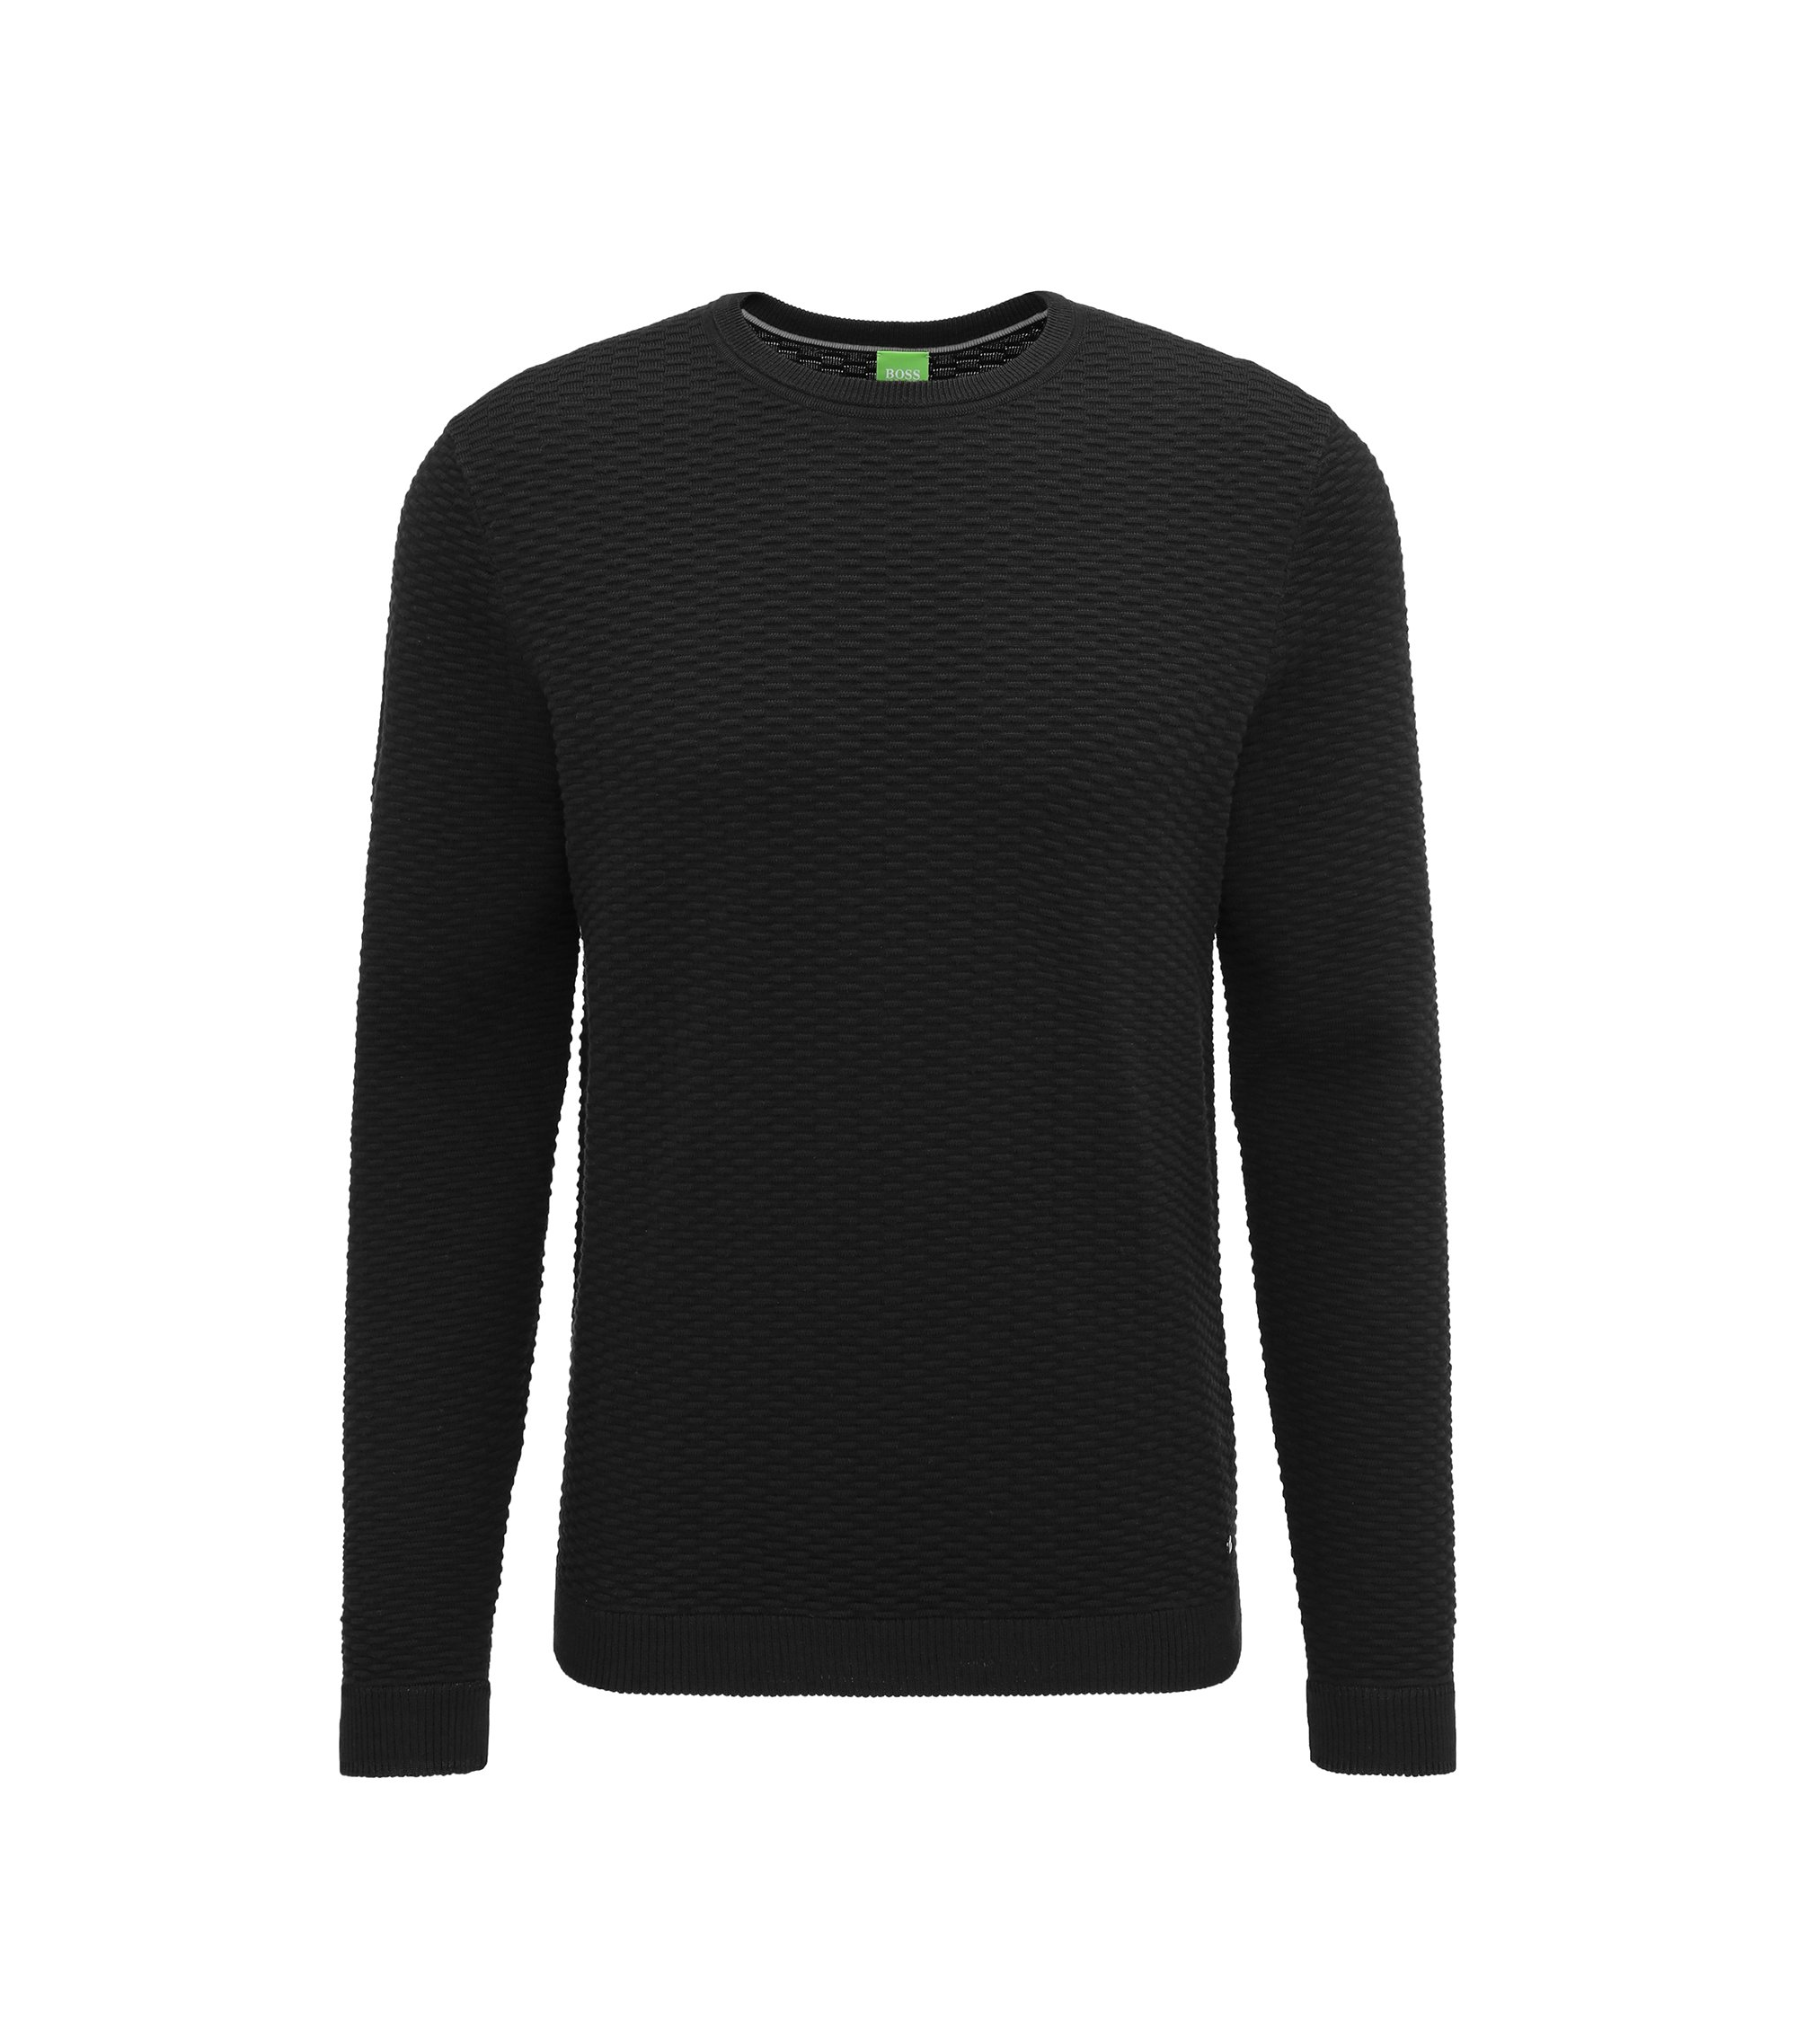 Regular-fit sweater in a structured cotton blend, Black